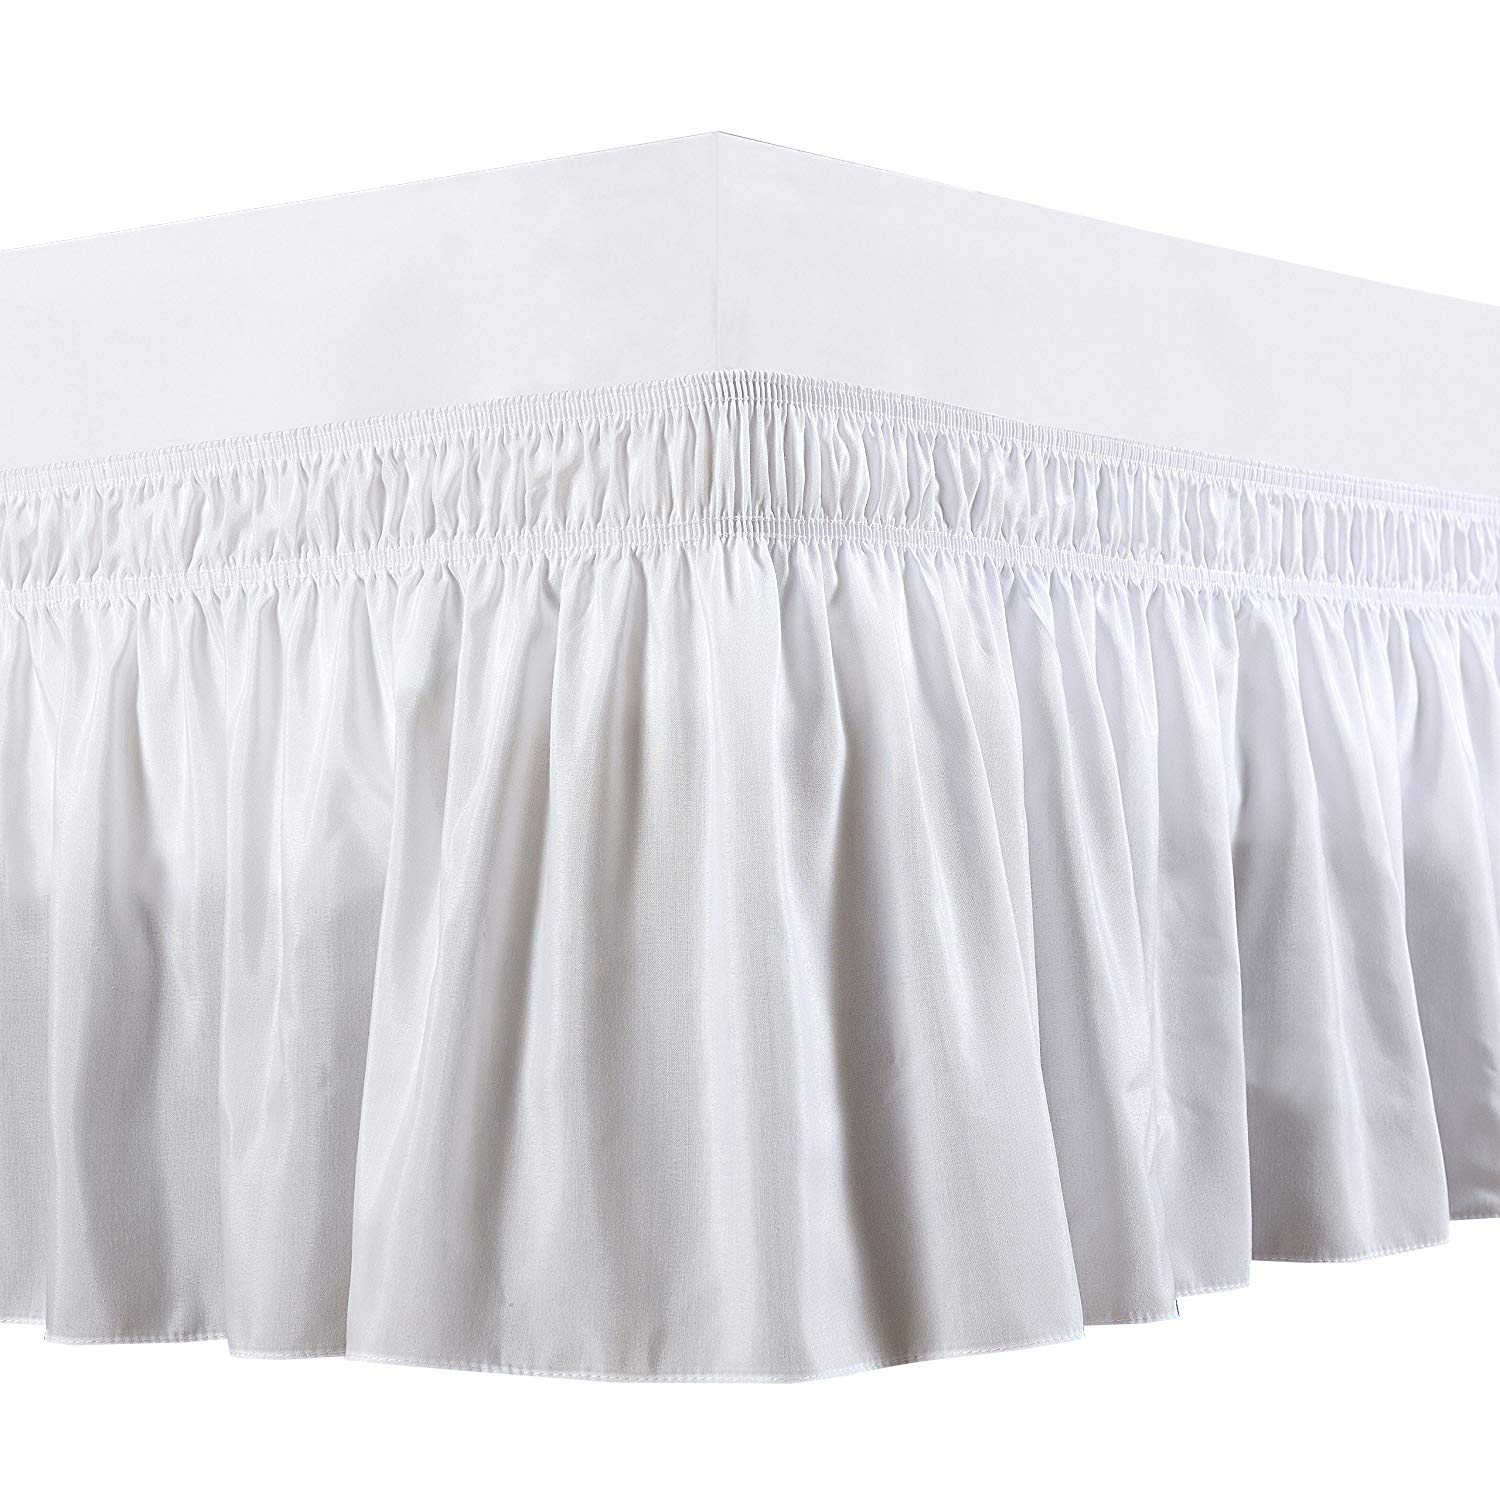 Rajlinen Wrap Around Bed Skirt -Polyester/Microfiber Elastic Dust Ruffle Three Fabric Sides Silky Soft & Wrinkle Free Classic Stylish Look in Your Bedroom (White, King /14)